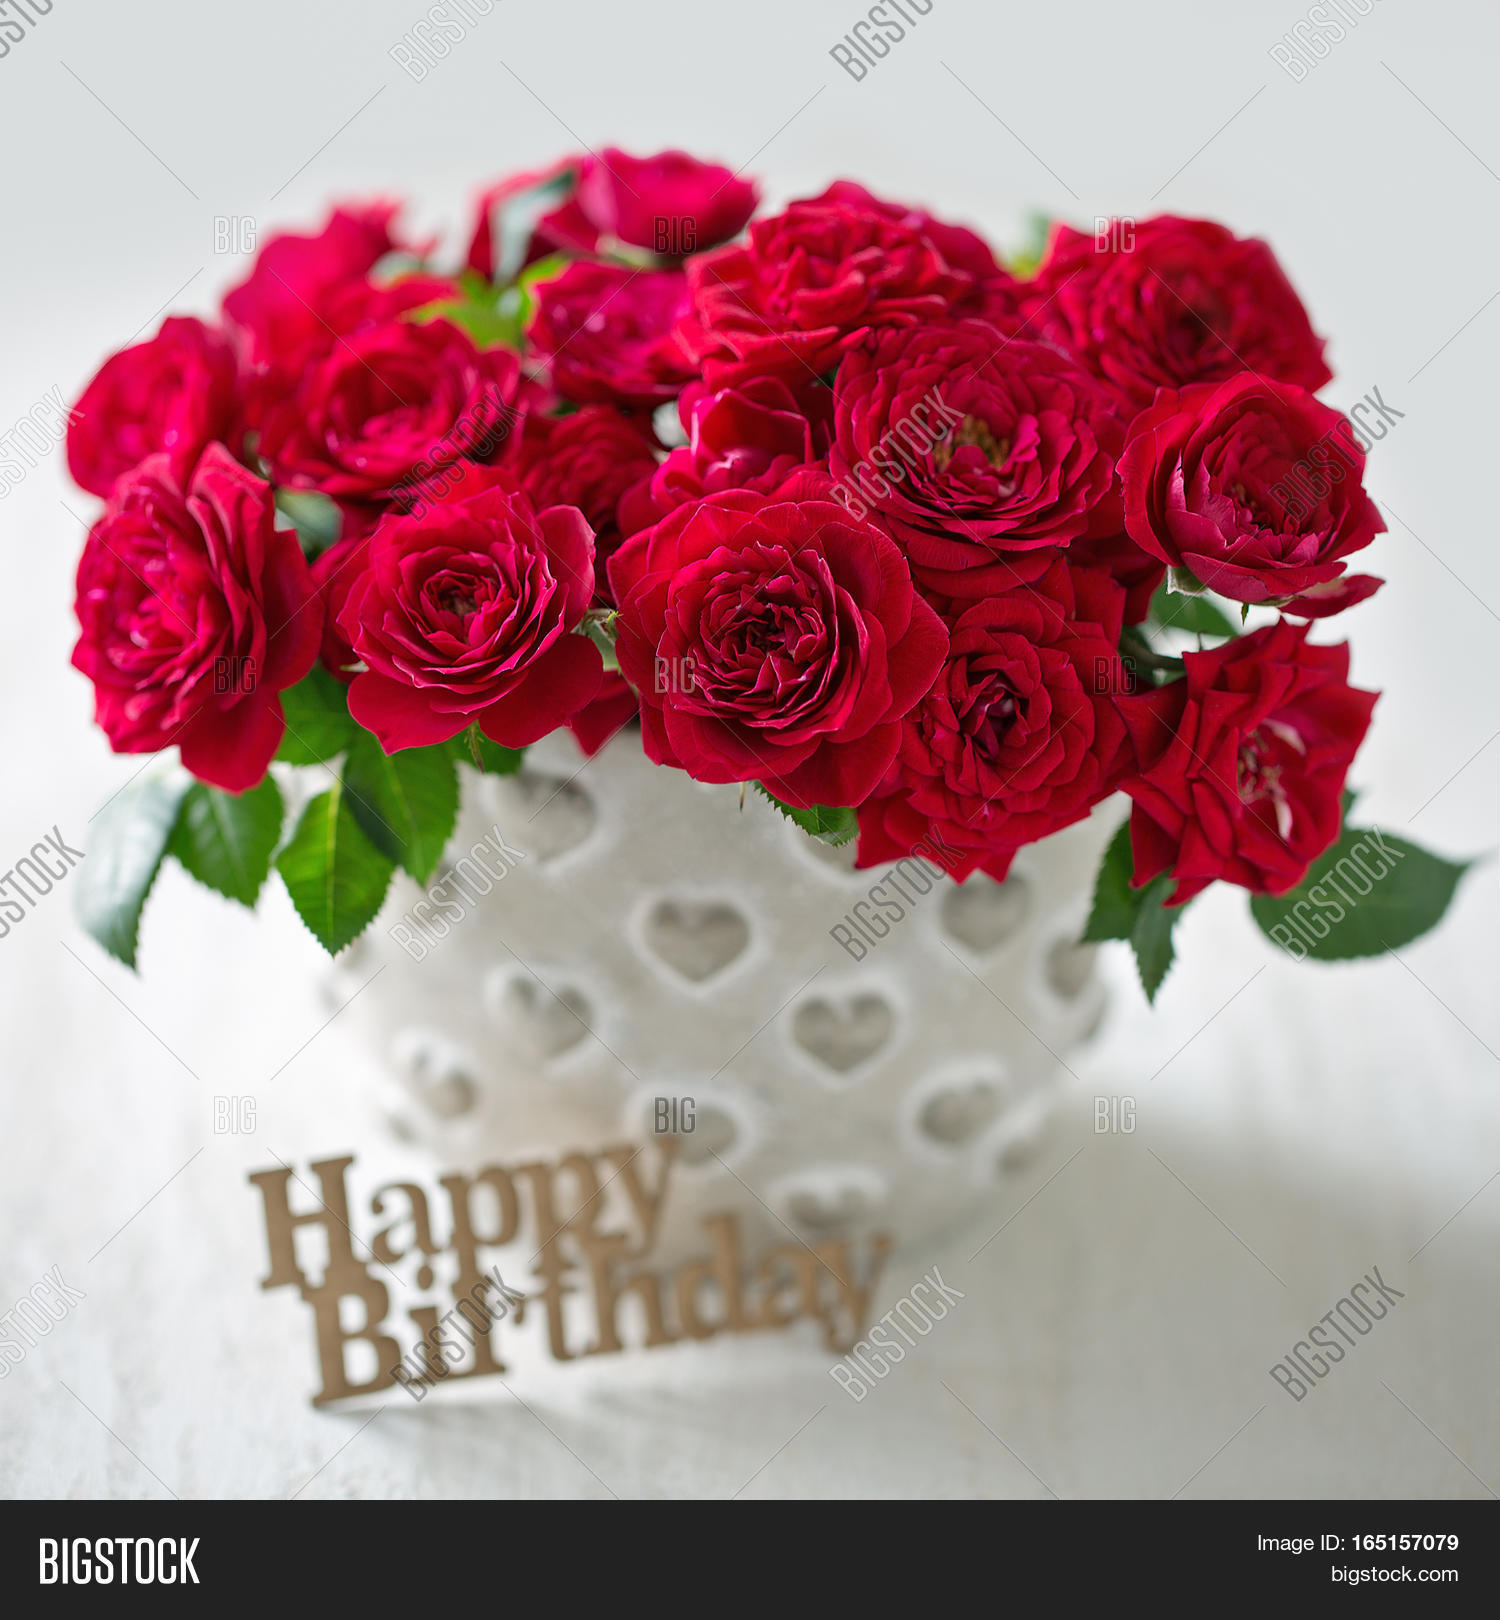 Bouquet Images For Birthday Roses Bouquet For Birthday Background